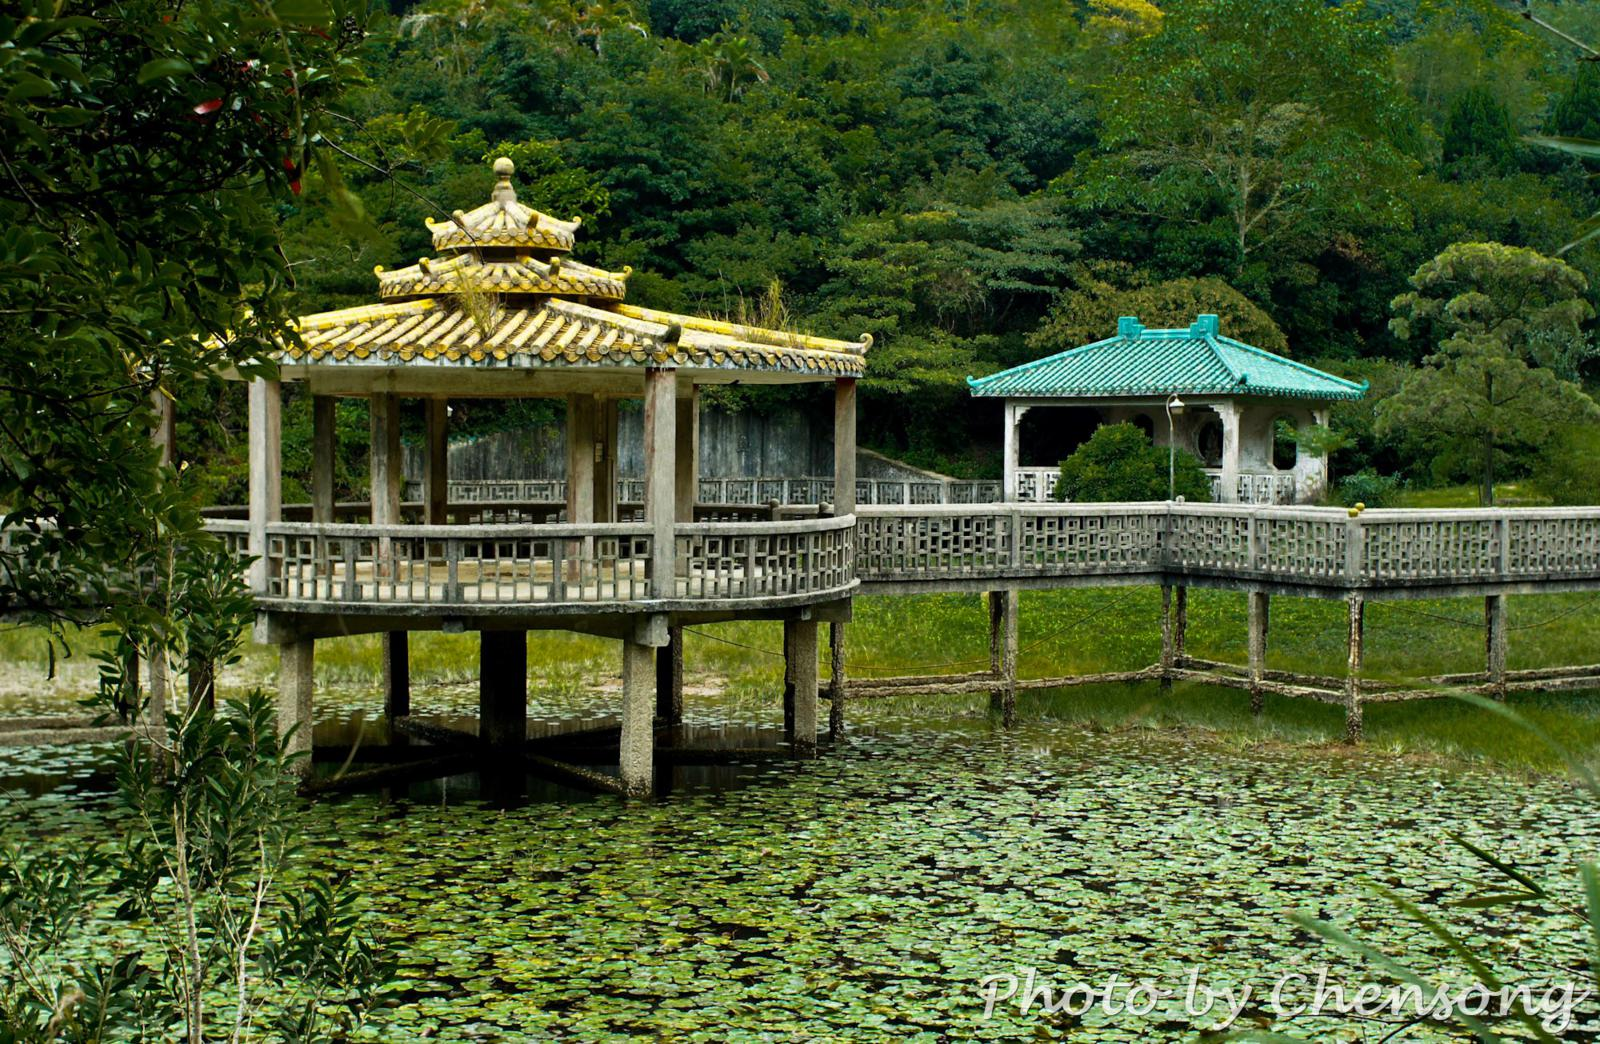 Lung Tsai Ng Yuen 龍仔悟園 at Lantau Trail near Keung Shan